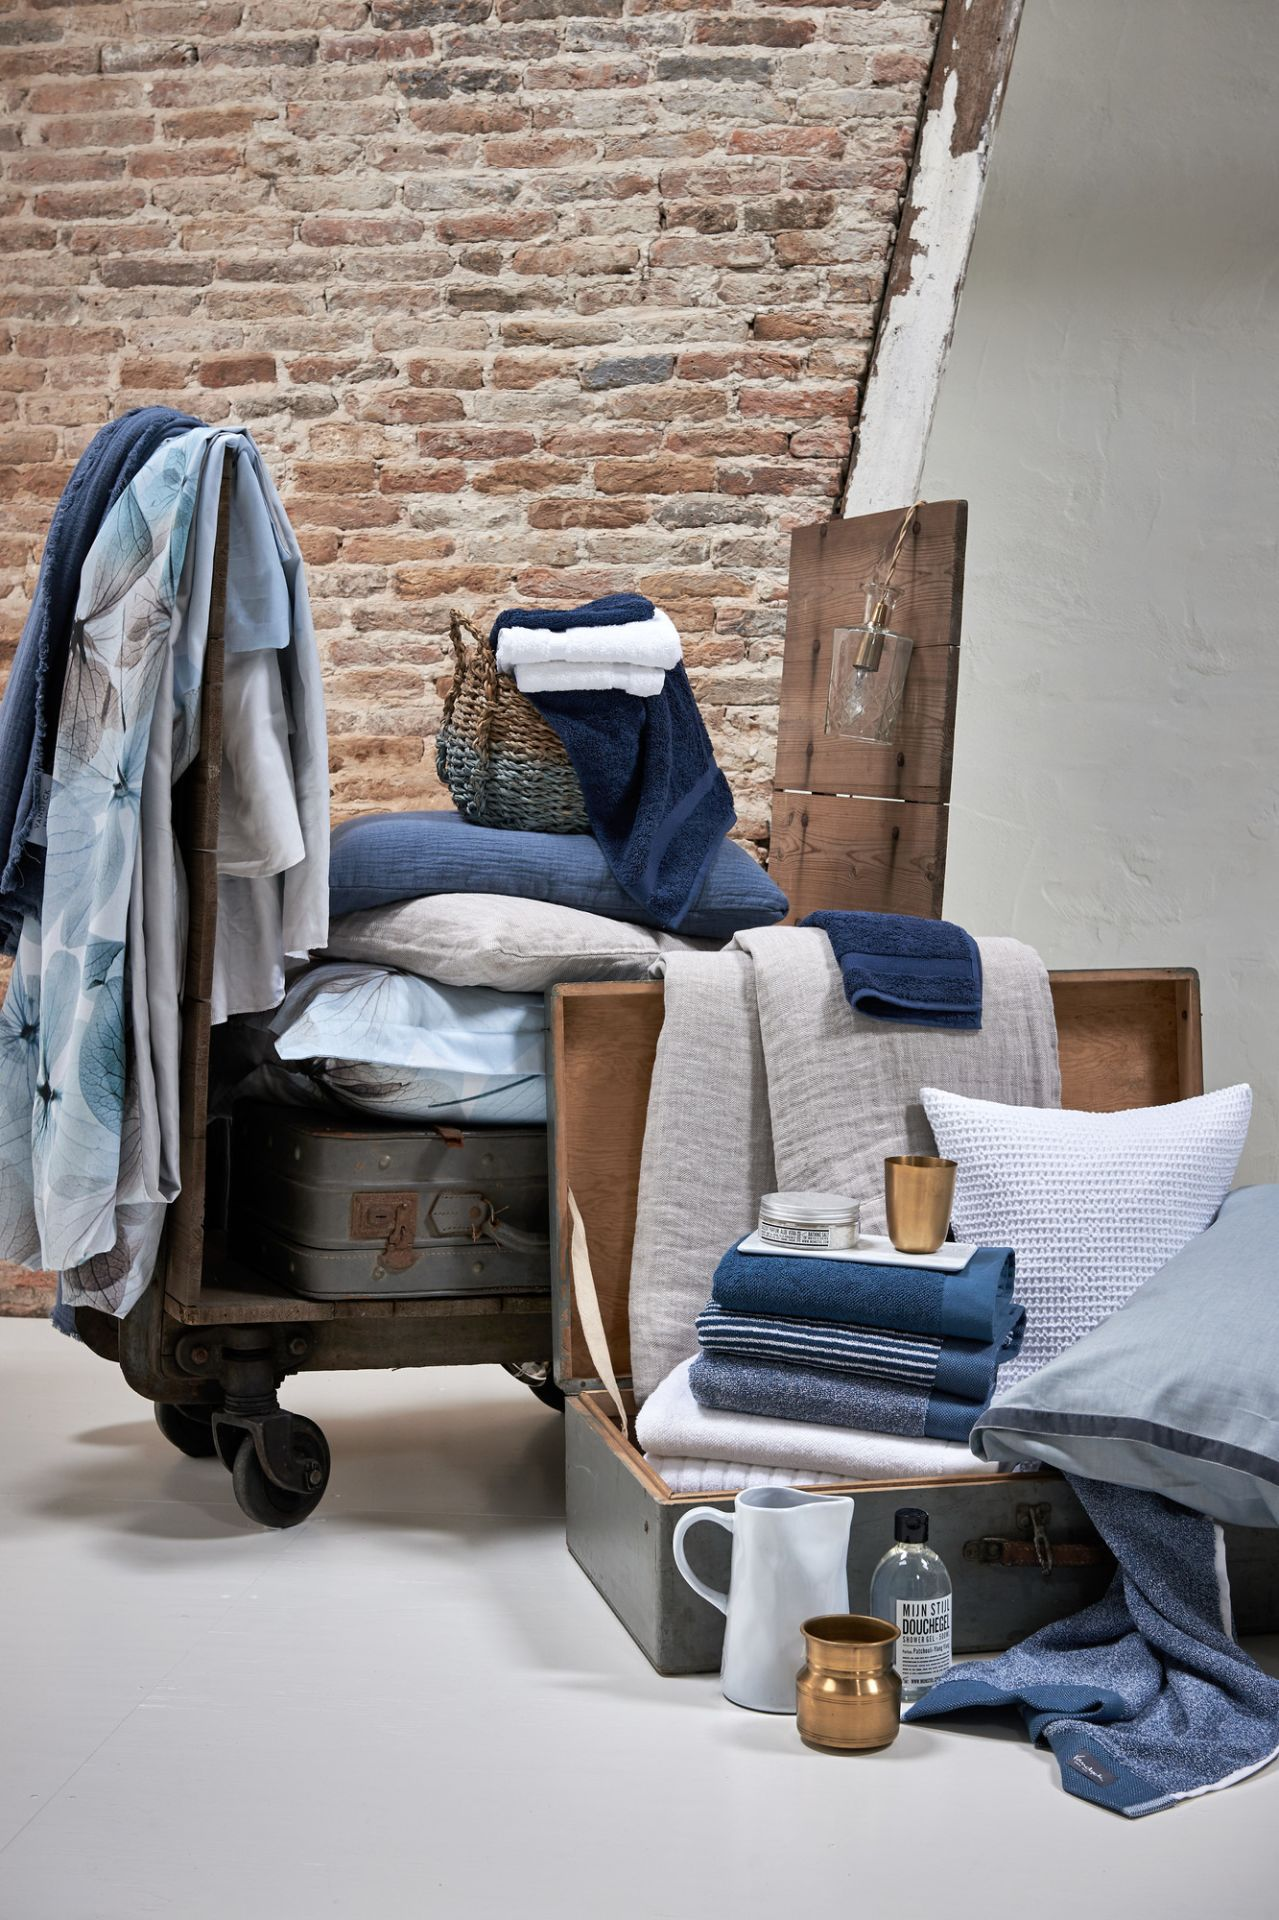 VanDyck bedtextiel Lovestory 403, Pure 8, Pure 16 184 faded denim, Pure 22 011 grey, Home 71 090 white, Home uni, Petite Ligne, Home Mouline 403 Vintage blue bij Faay Wonen in Oudewater